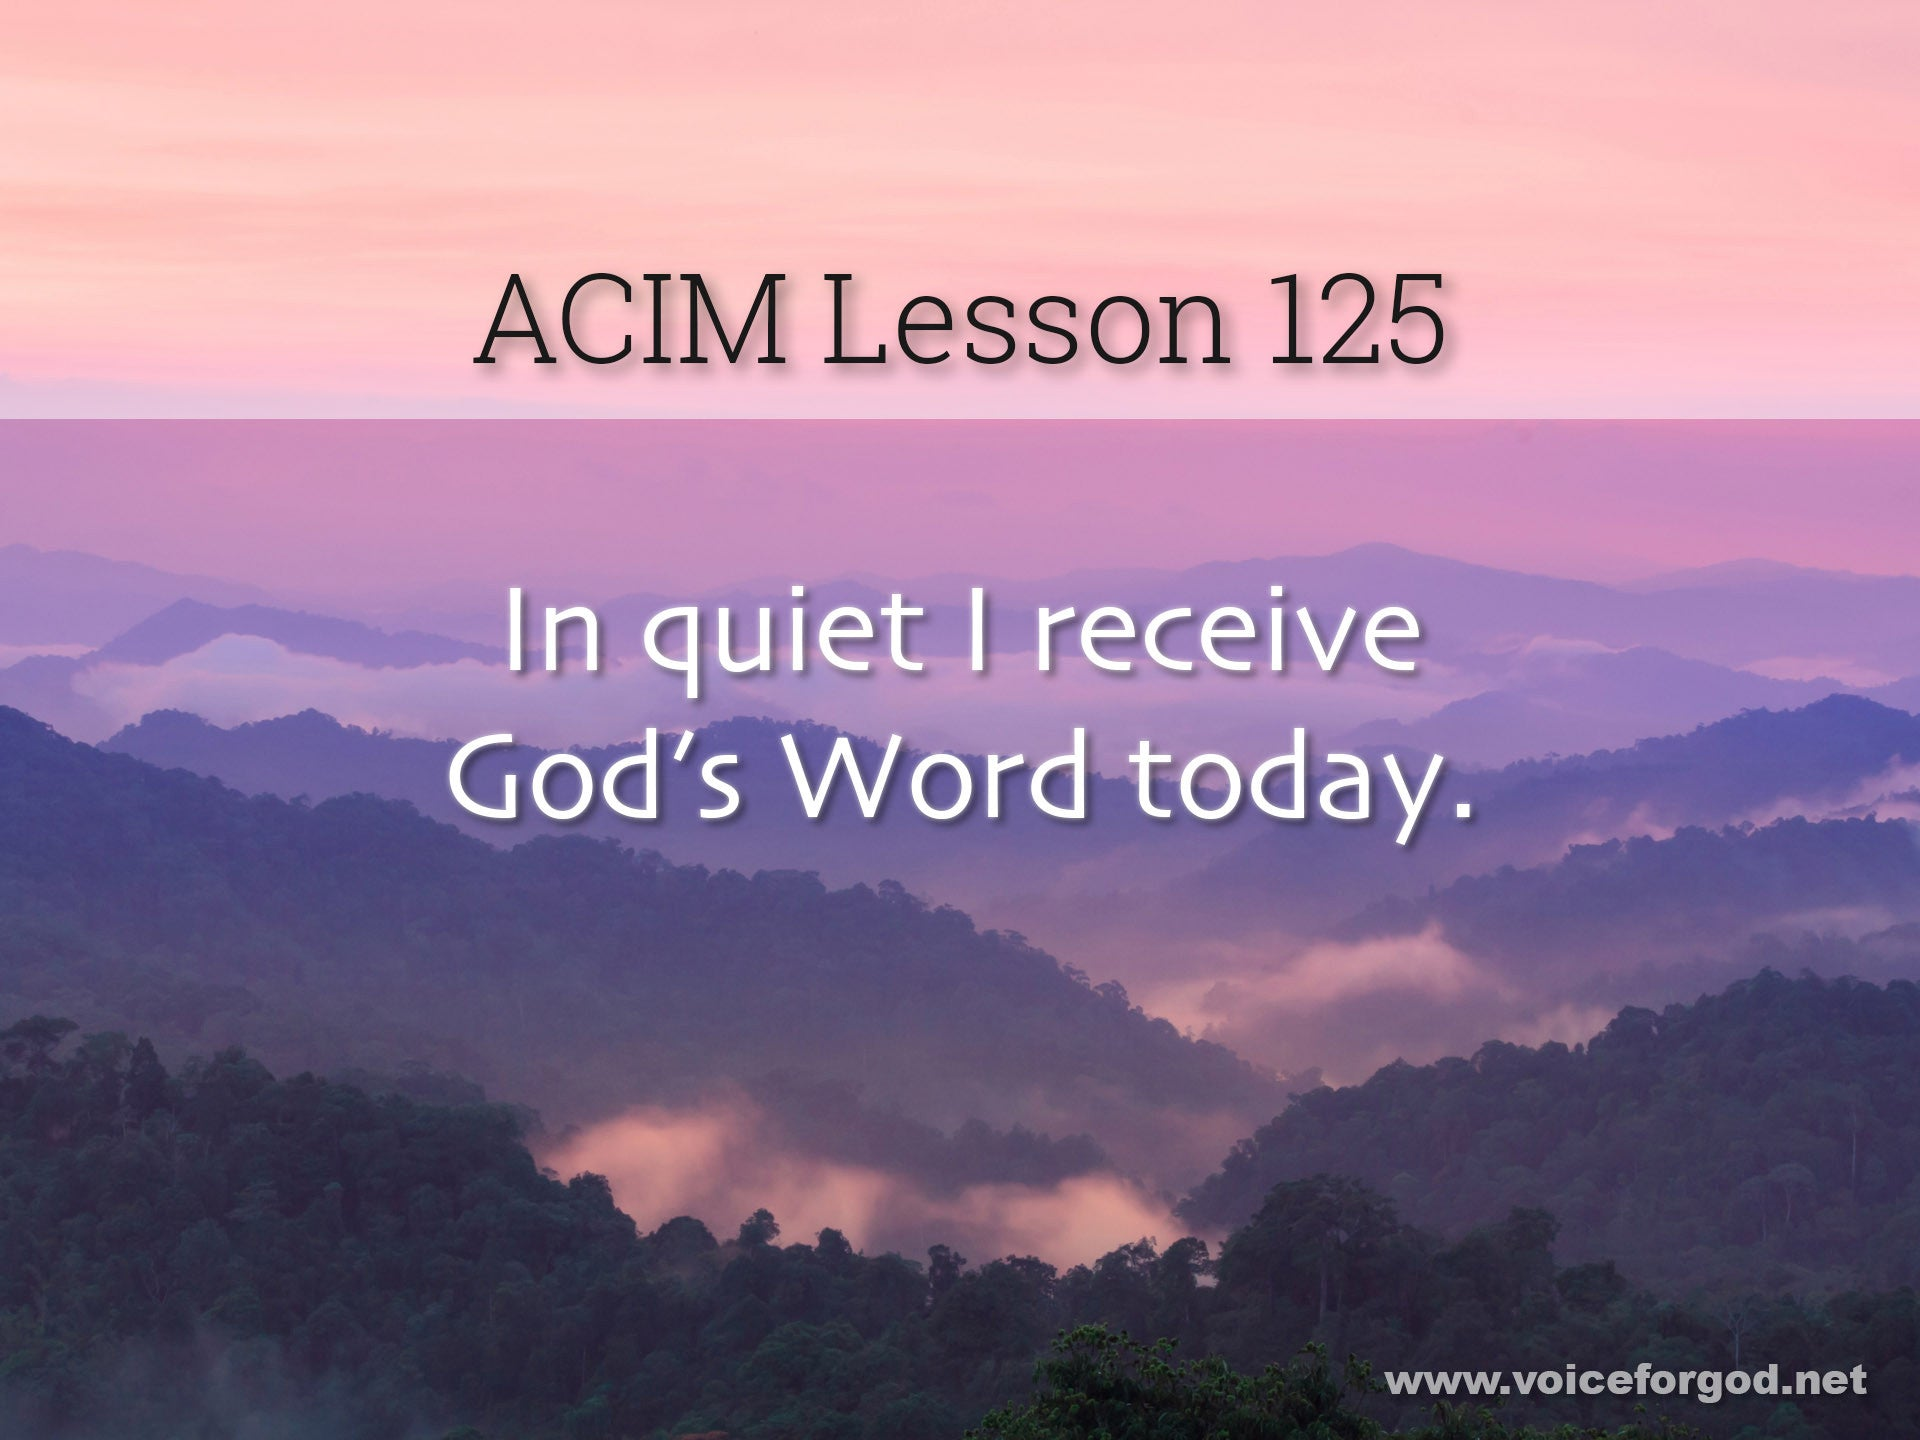 ACIM Lesson 125 - A Course in Miracles Workbook Lesson 125